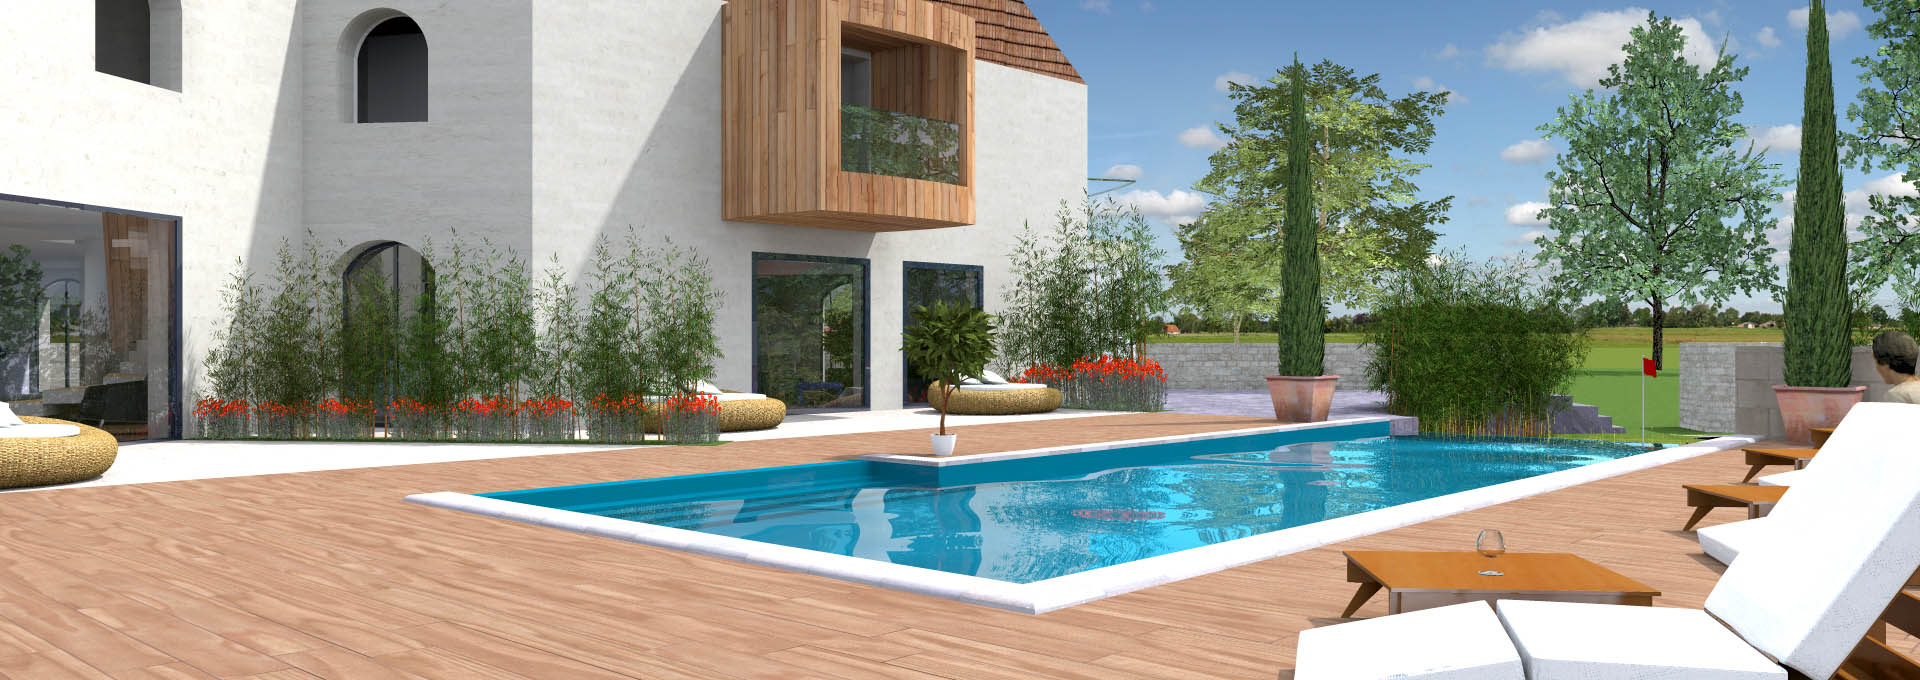 Amnagement spa extrieur simple comment crer un rangement for Amenagement exterieur piscine